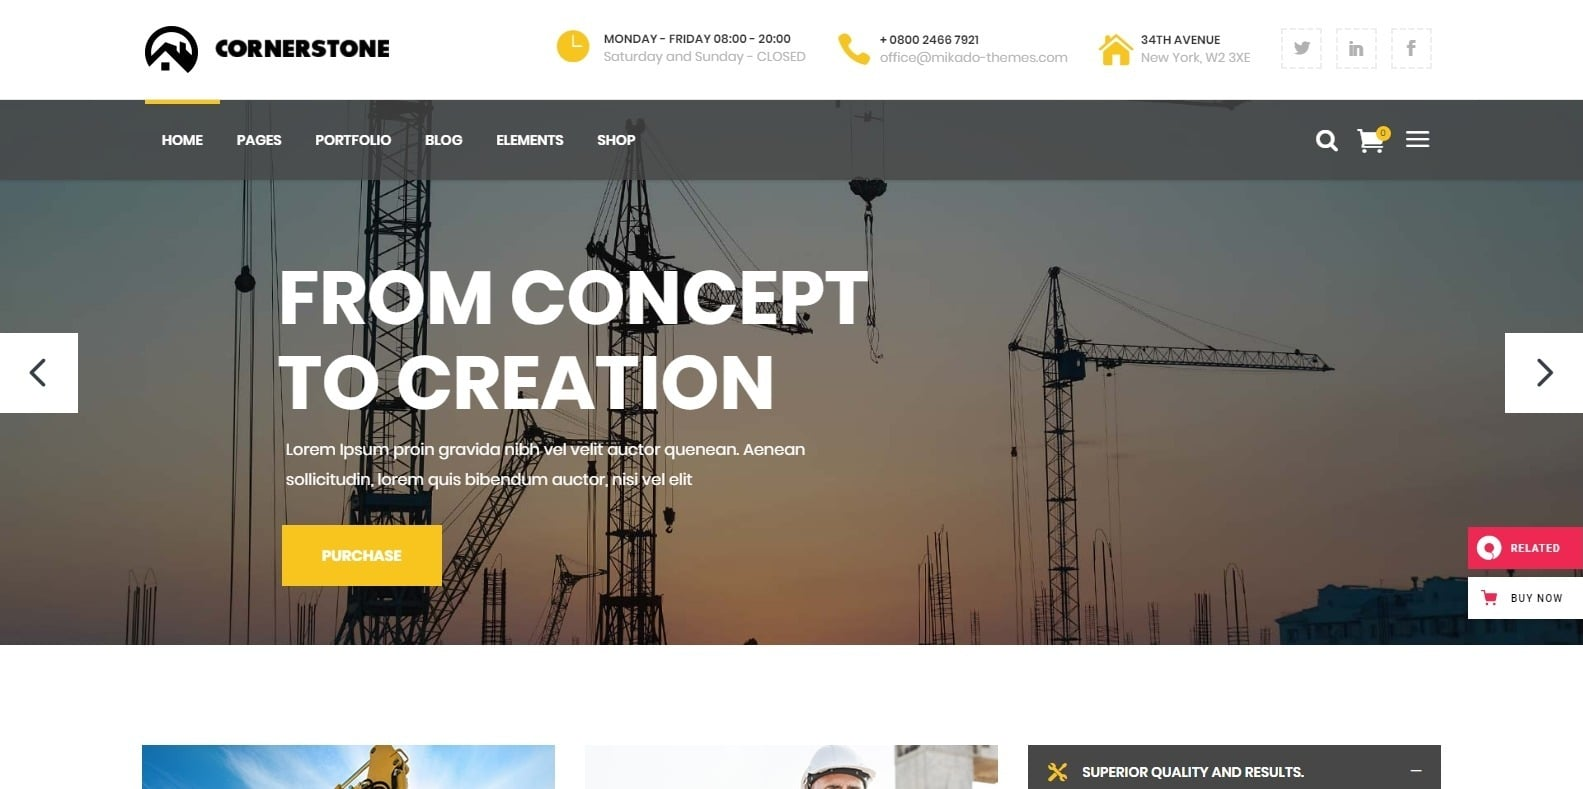 cornerstone-handyman-website-template-wordpress